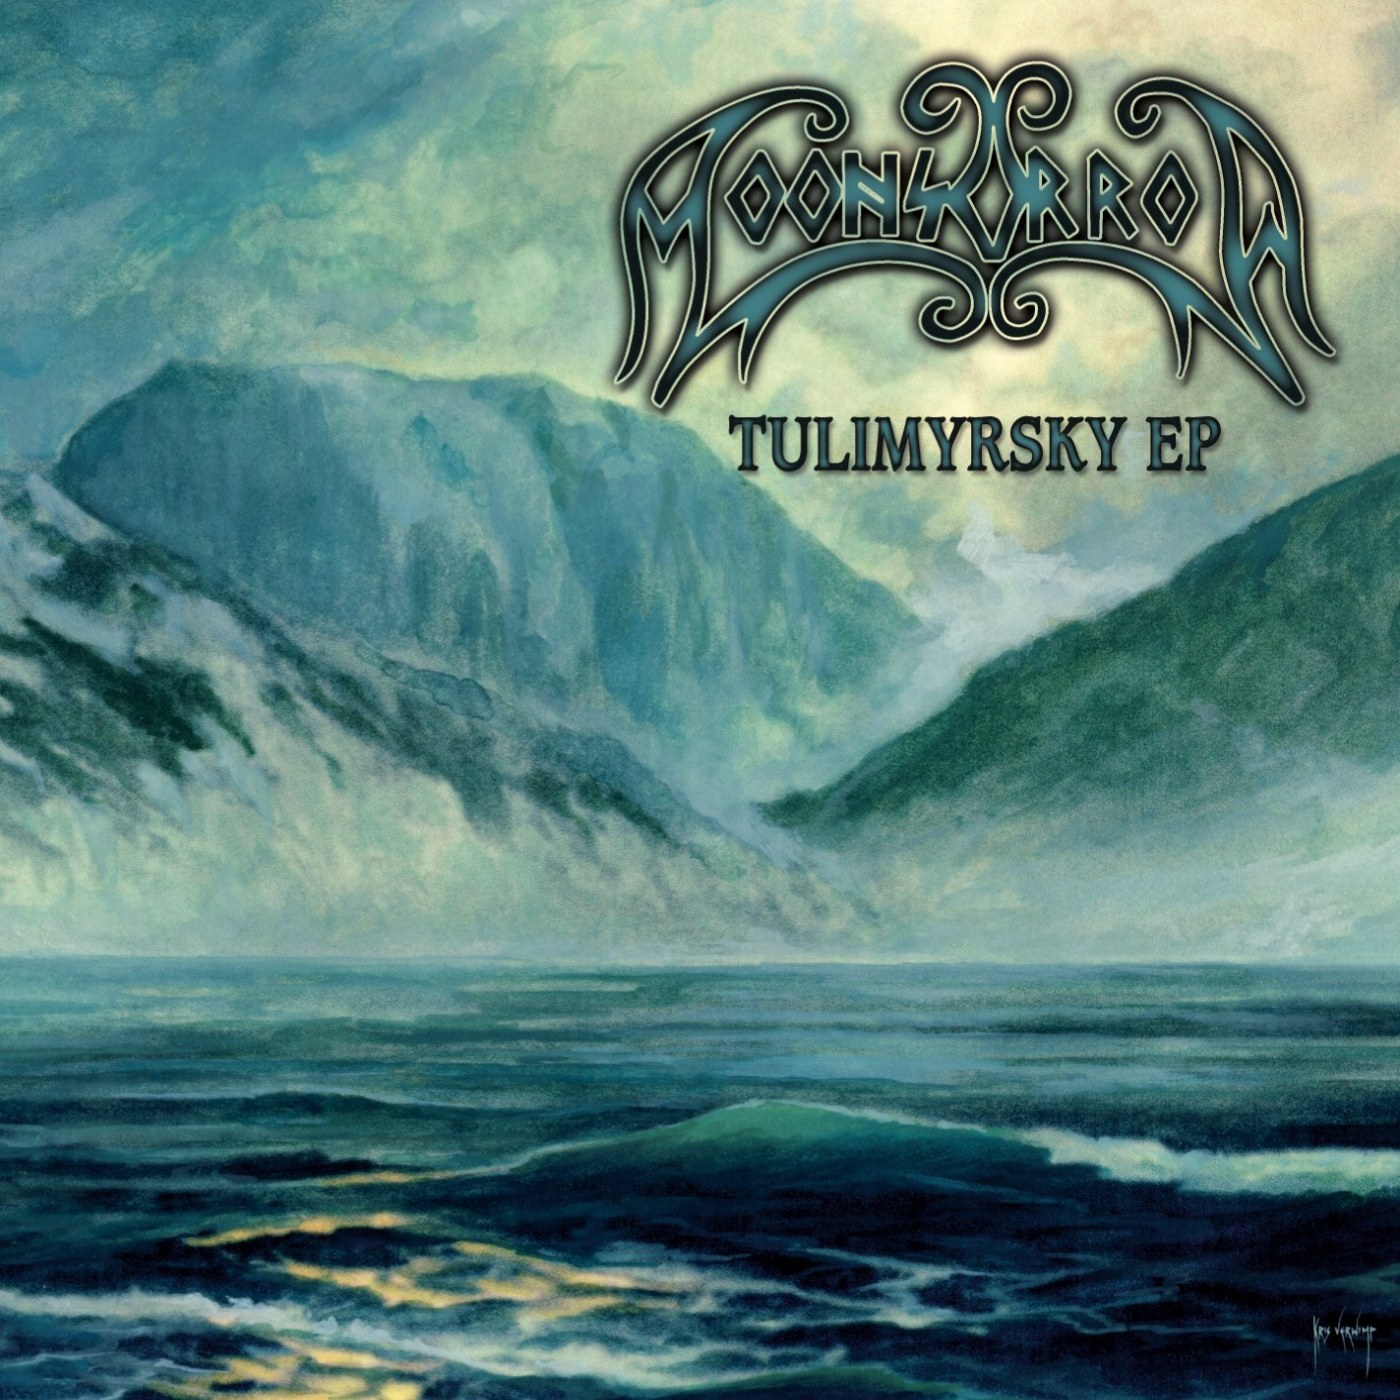 Review for Moonsorrow - Tulimyrsky